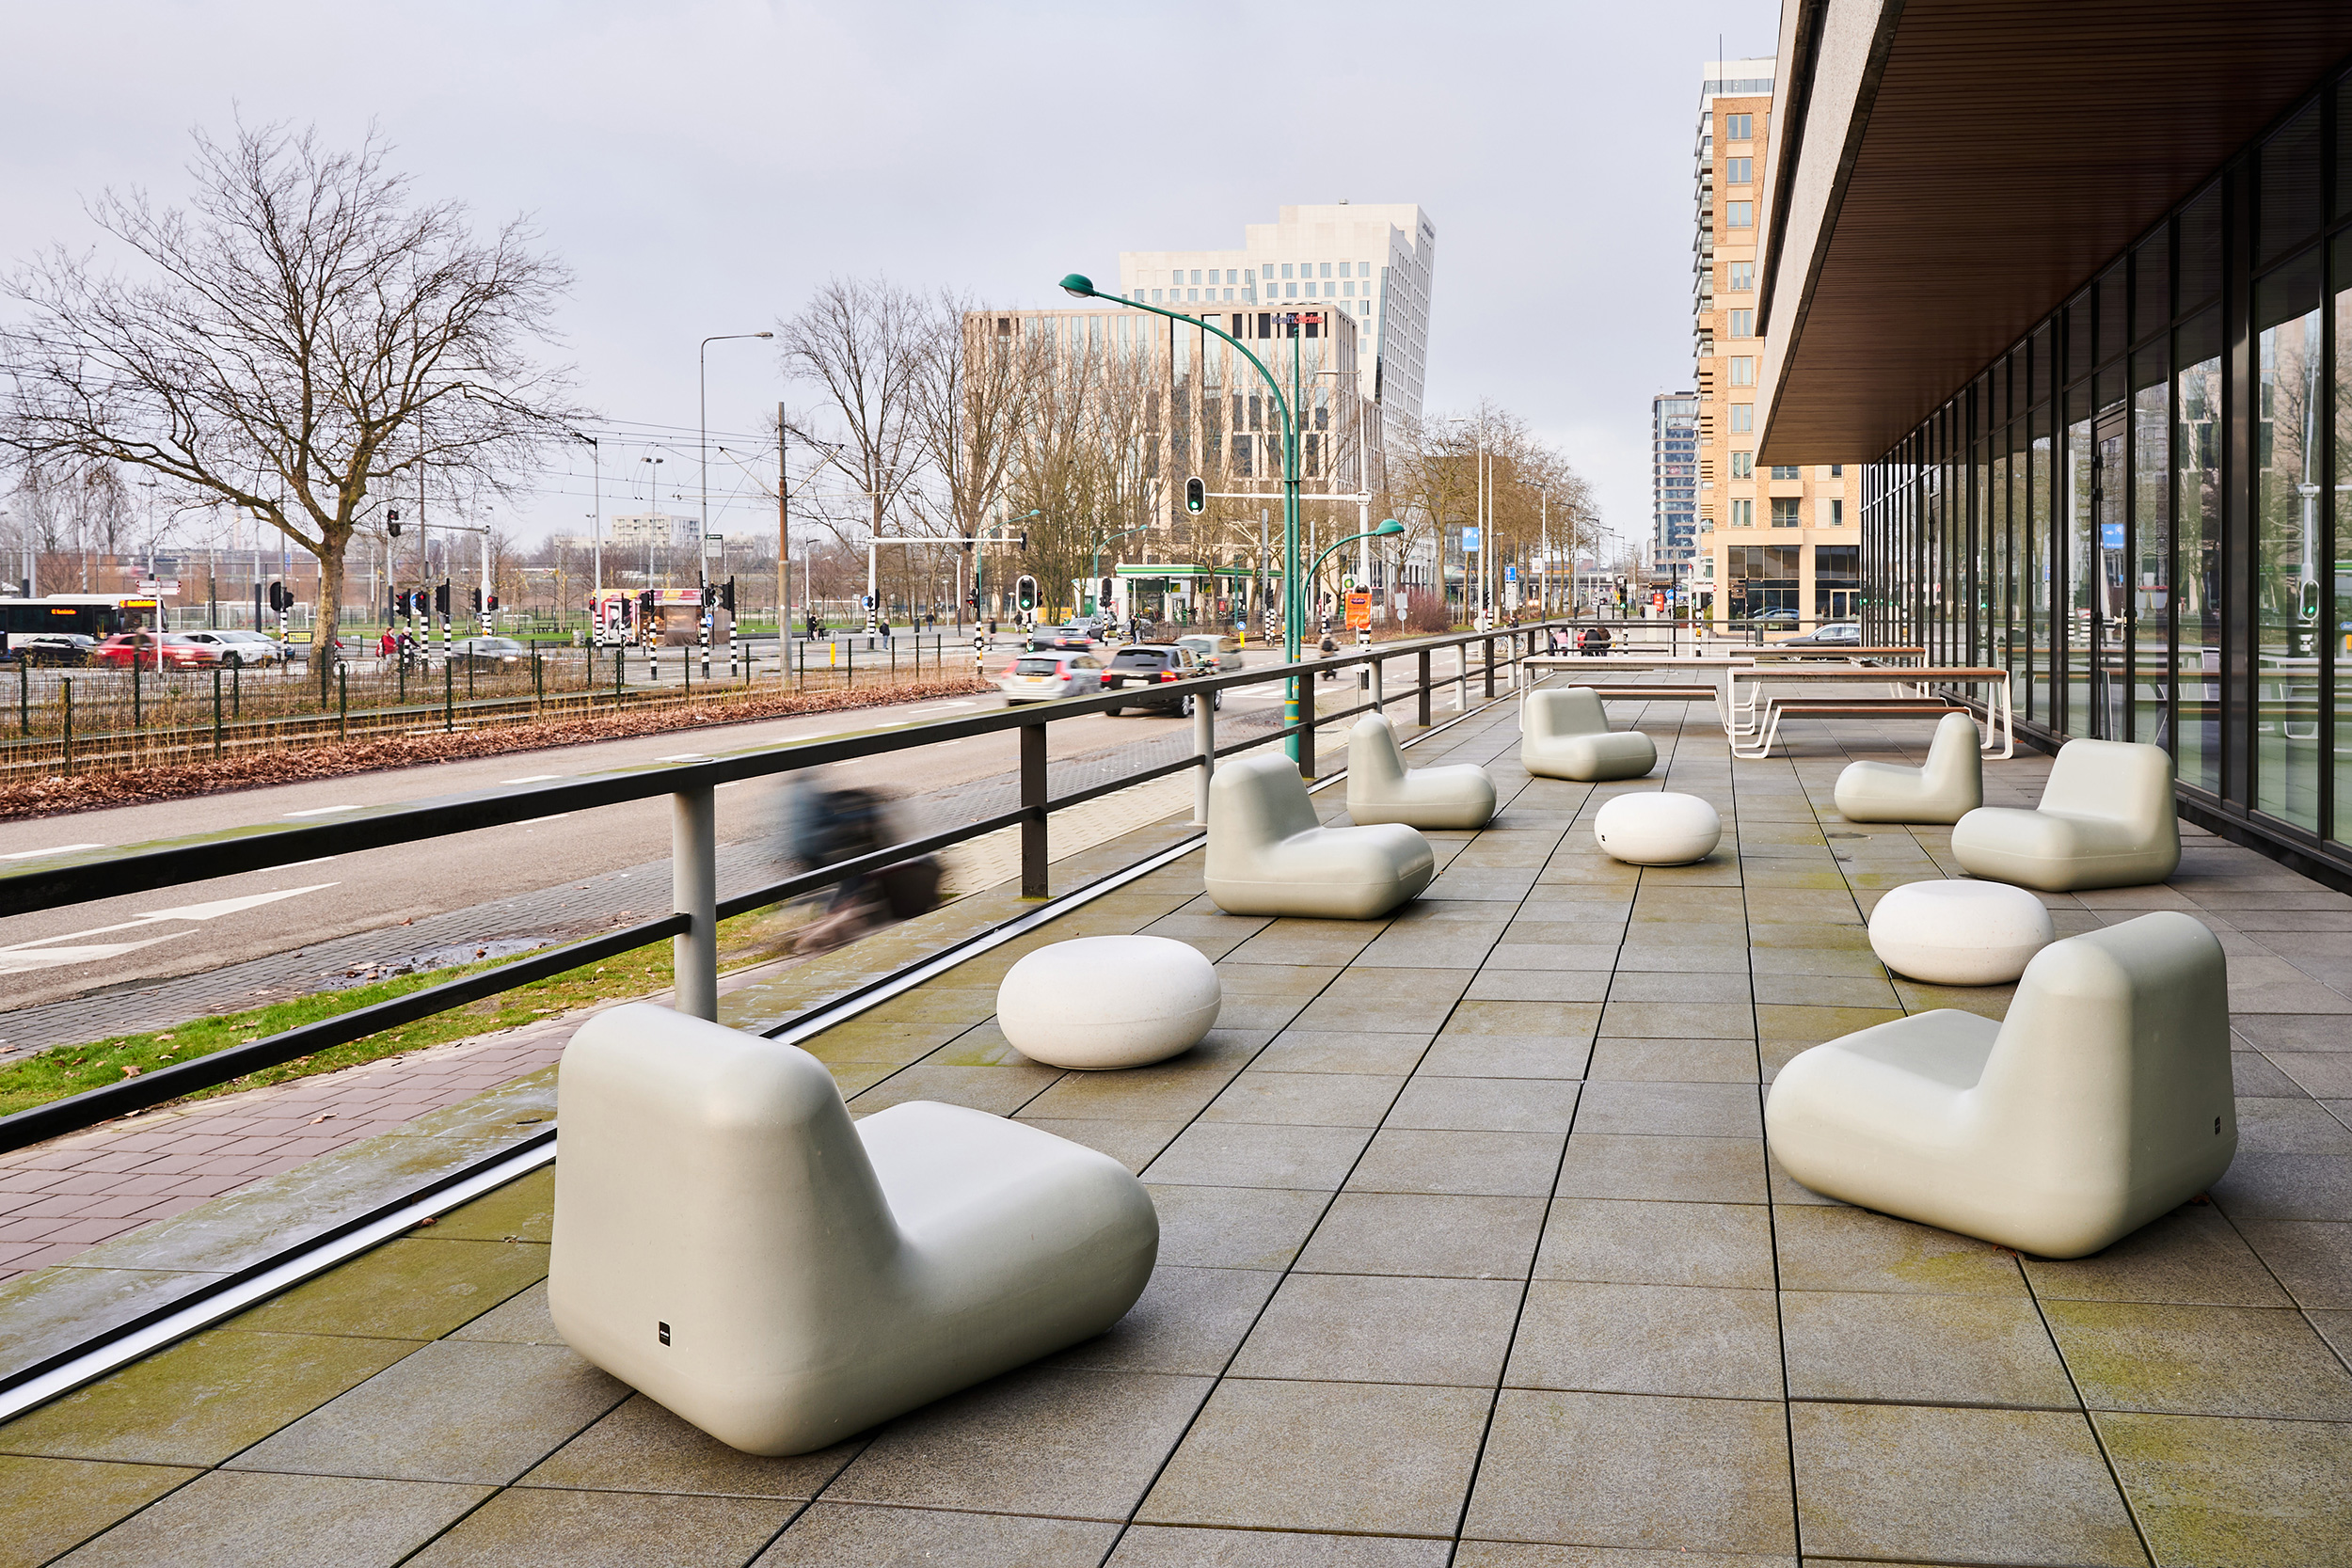 Zuidas overview with citizens passing a public terrace with Durbanis recycled seats